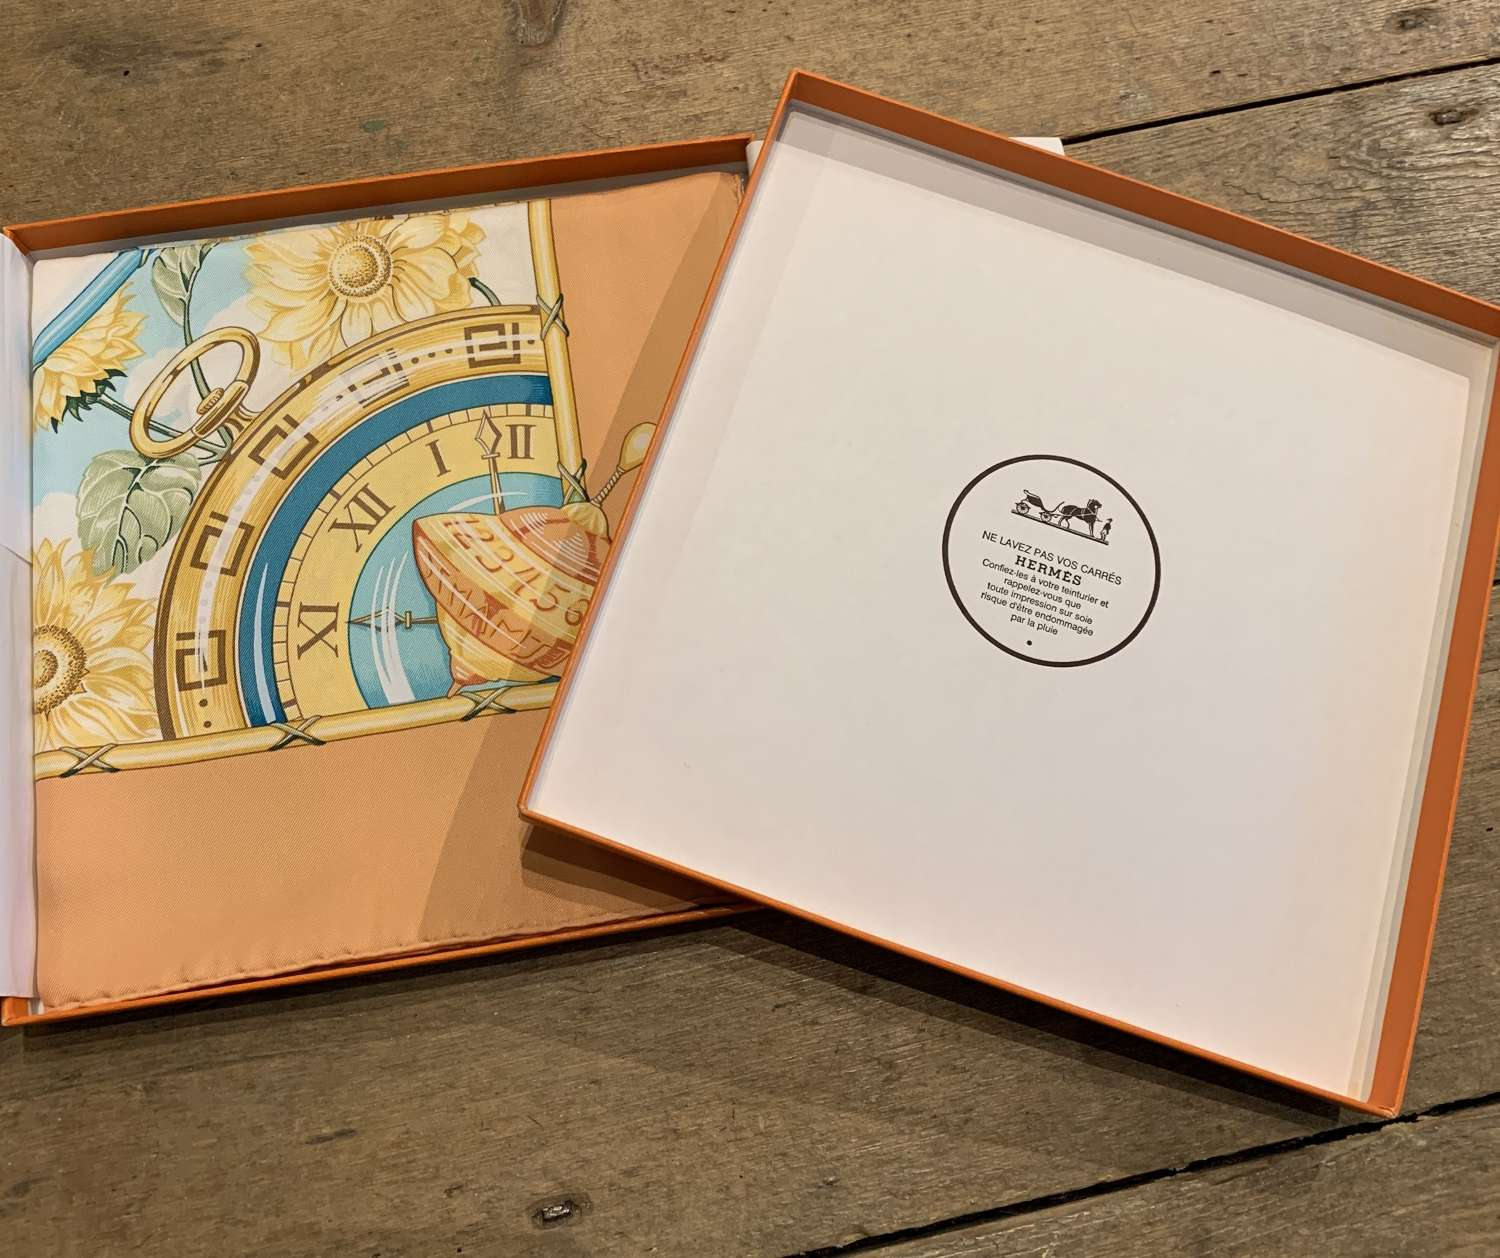 Vintage Hermes Scarf, Limited Edition for Vacheron Constantin